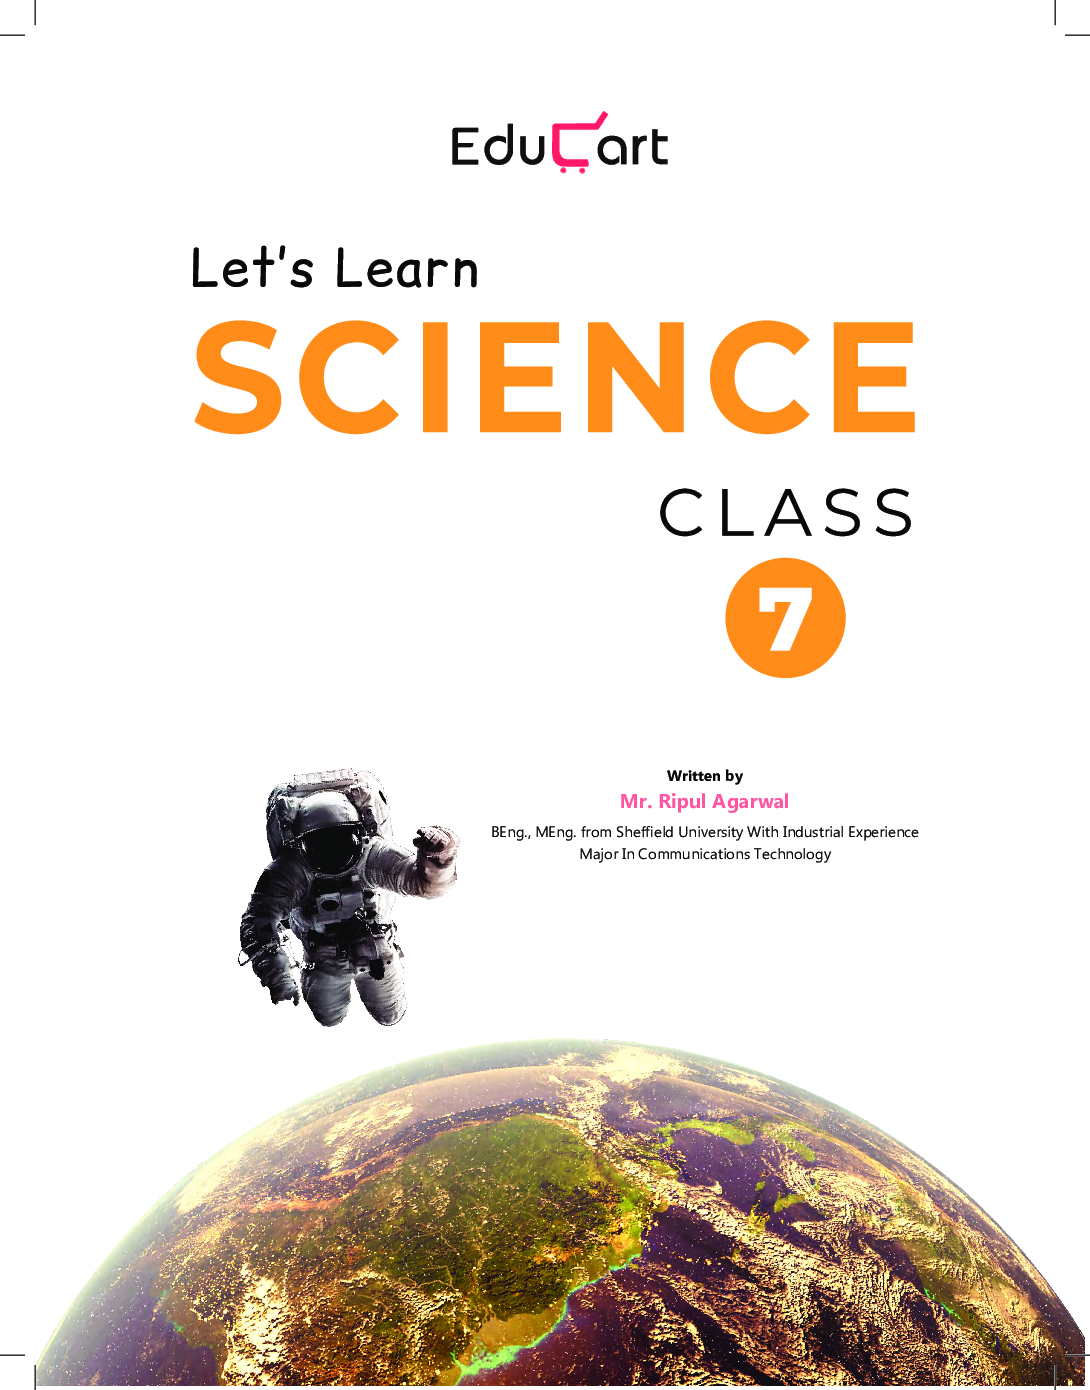 Educart CBSE Let's Learn Science Textbook For Class - VII - Page 2